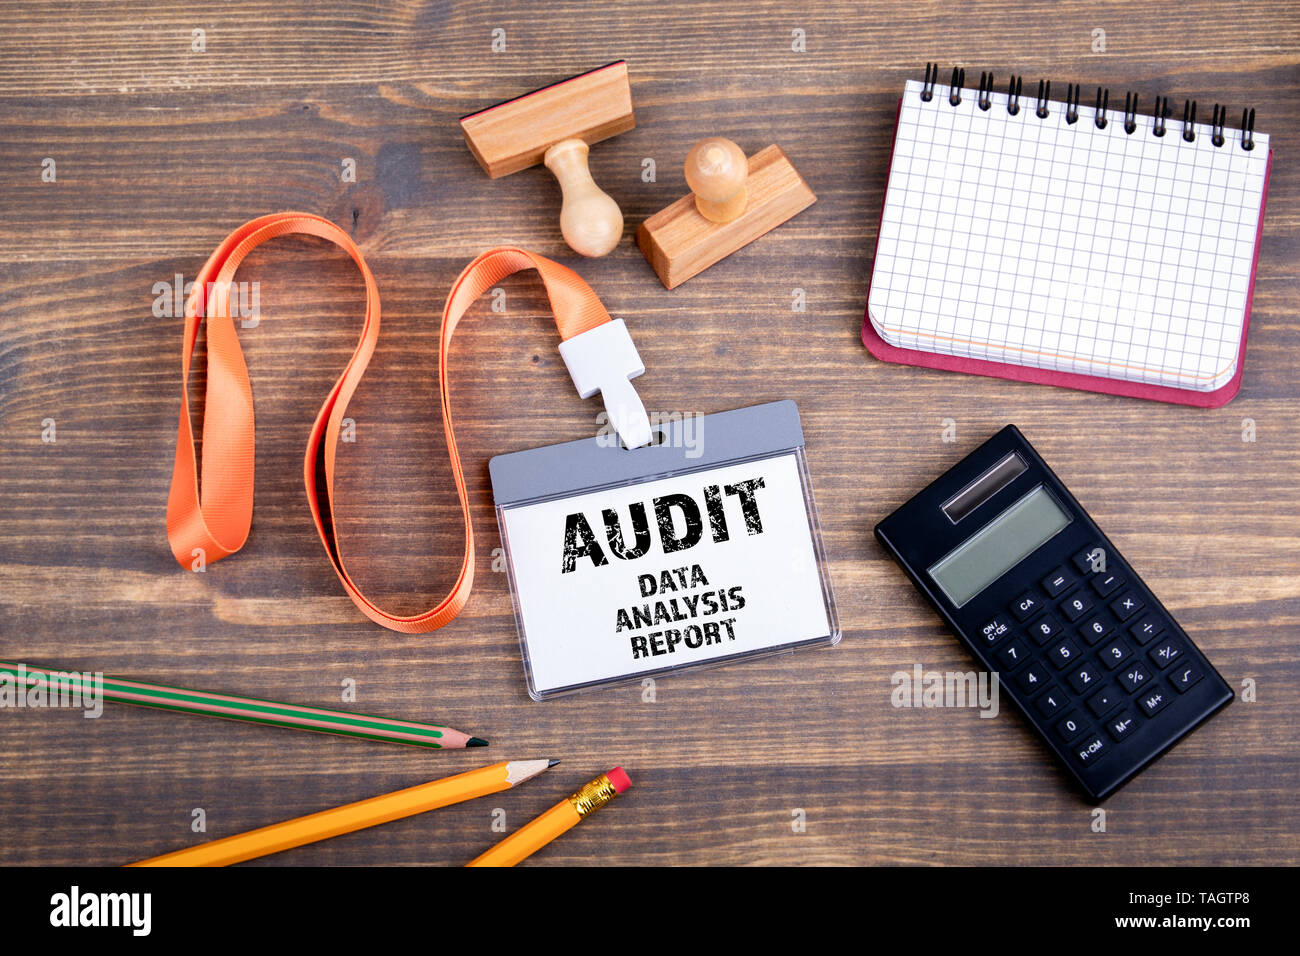 Audit, data, analysis and report. Identification card with text - Stock Image